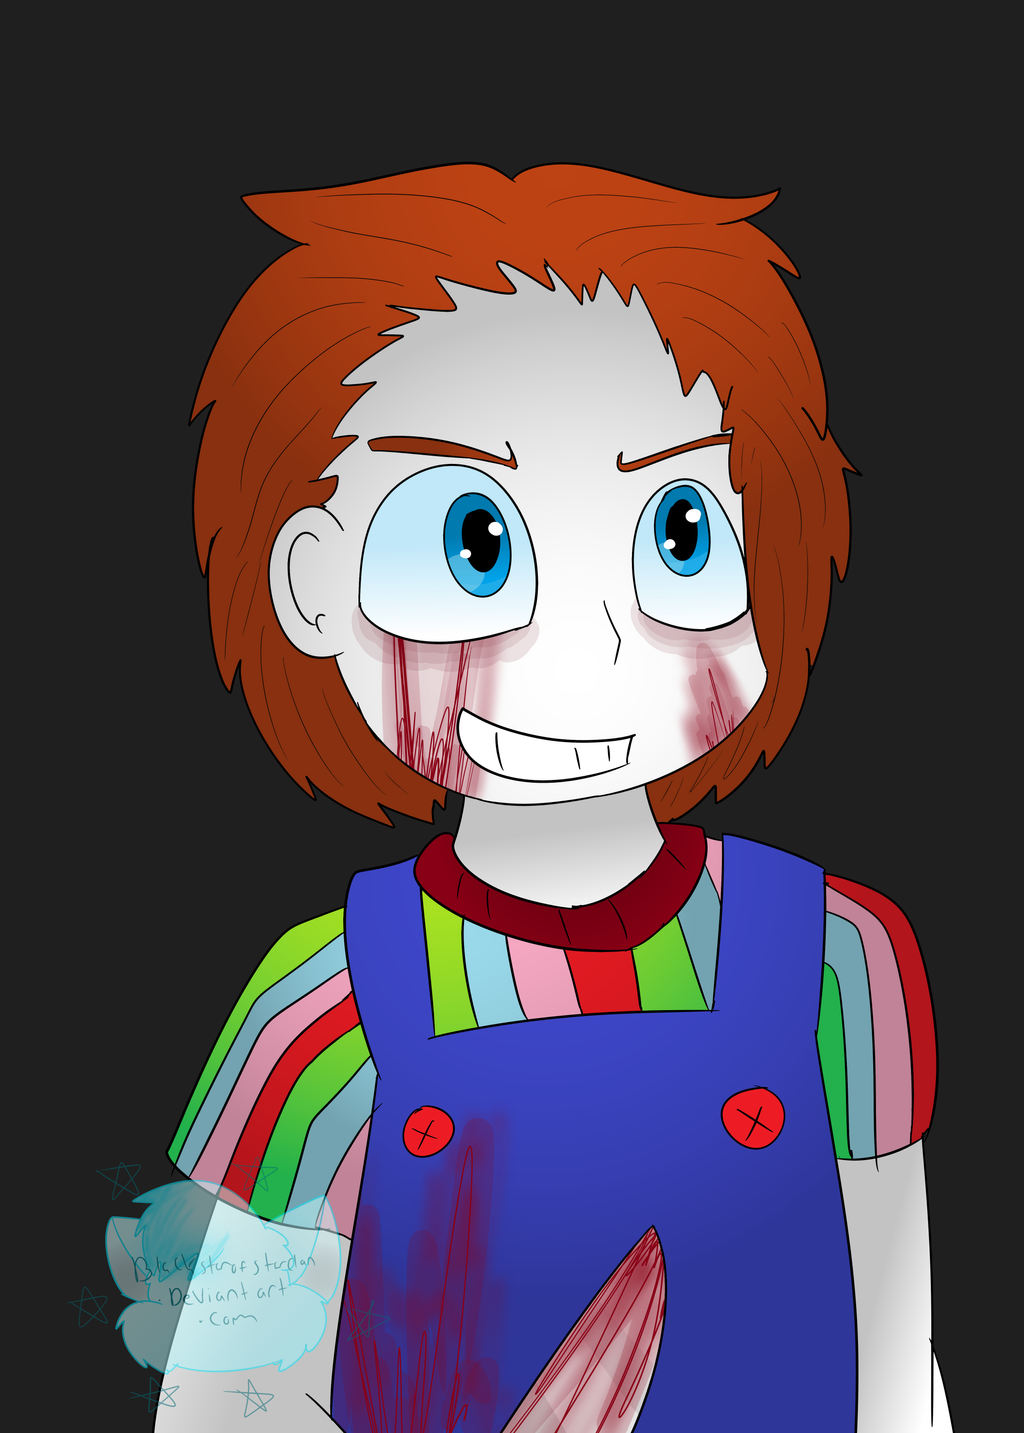 Chucky The Killer Doll By NekoSugarStar